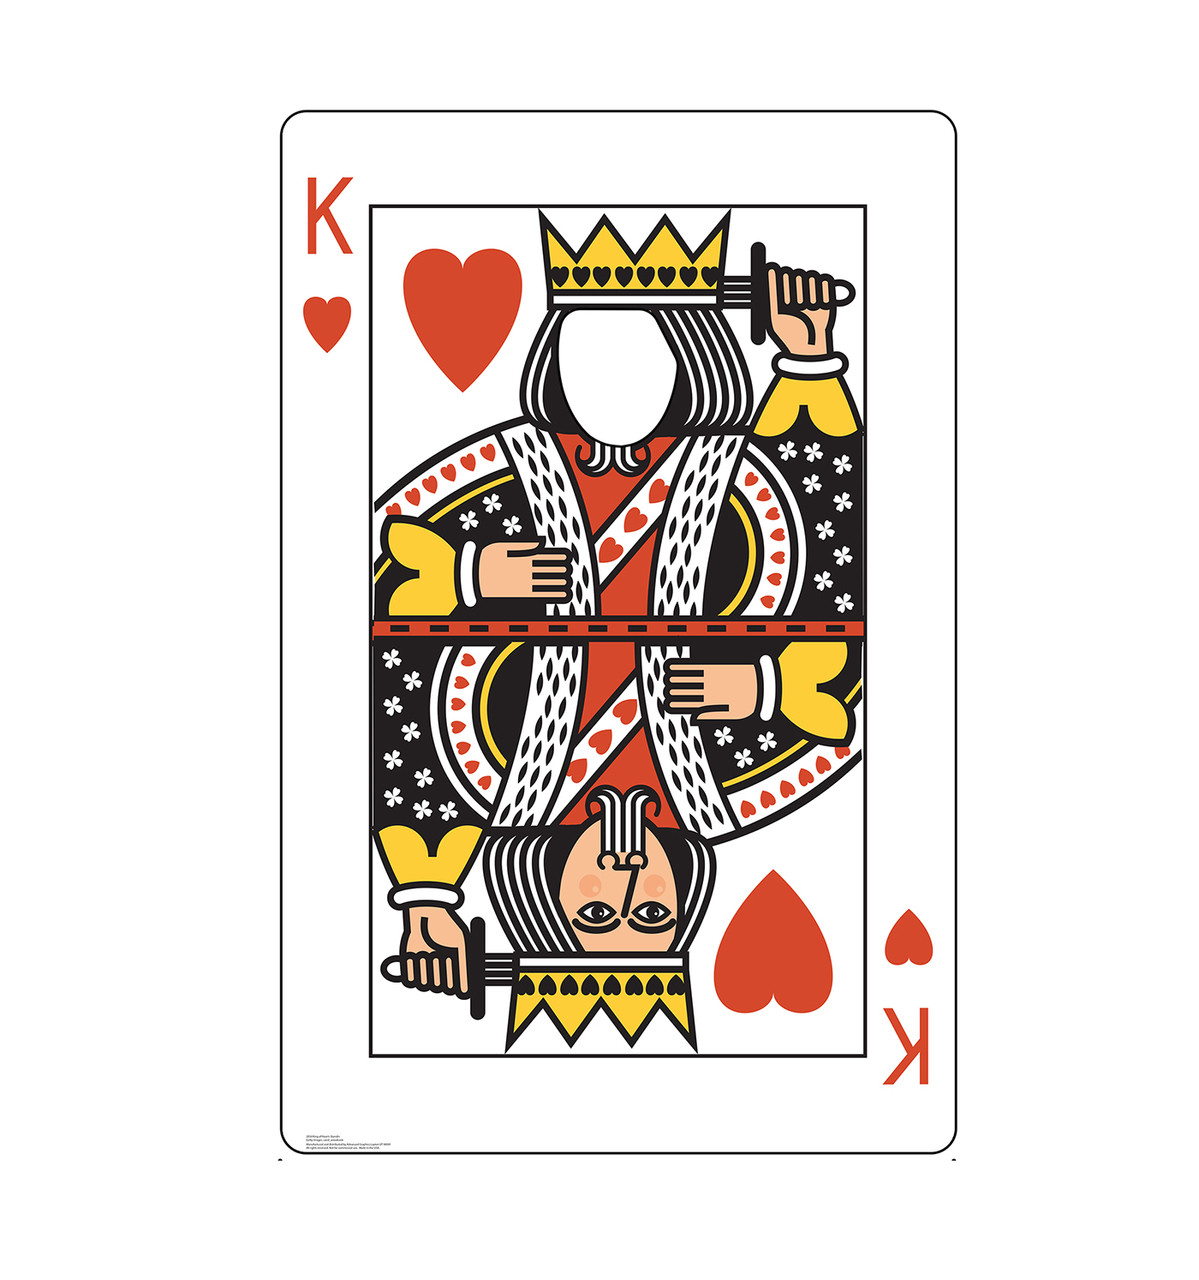 Life-size cardboard standee of the King of Hearts Card standin.